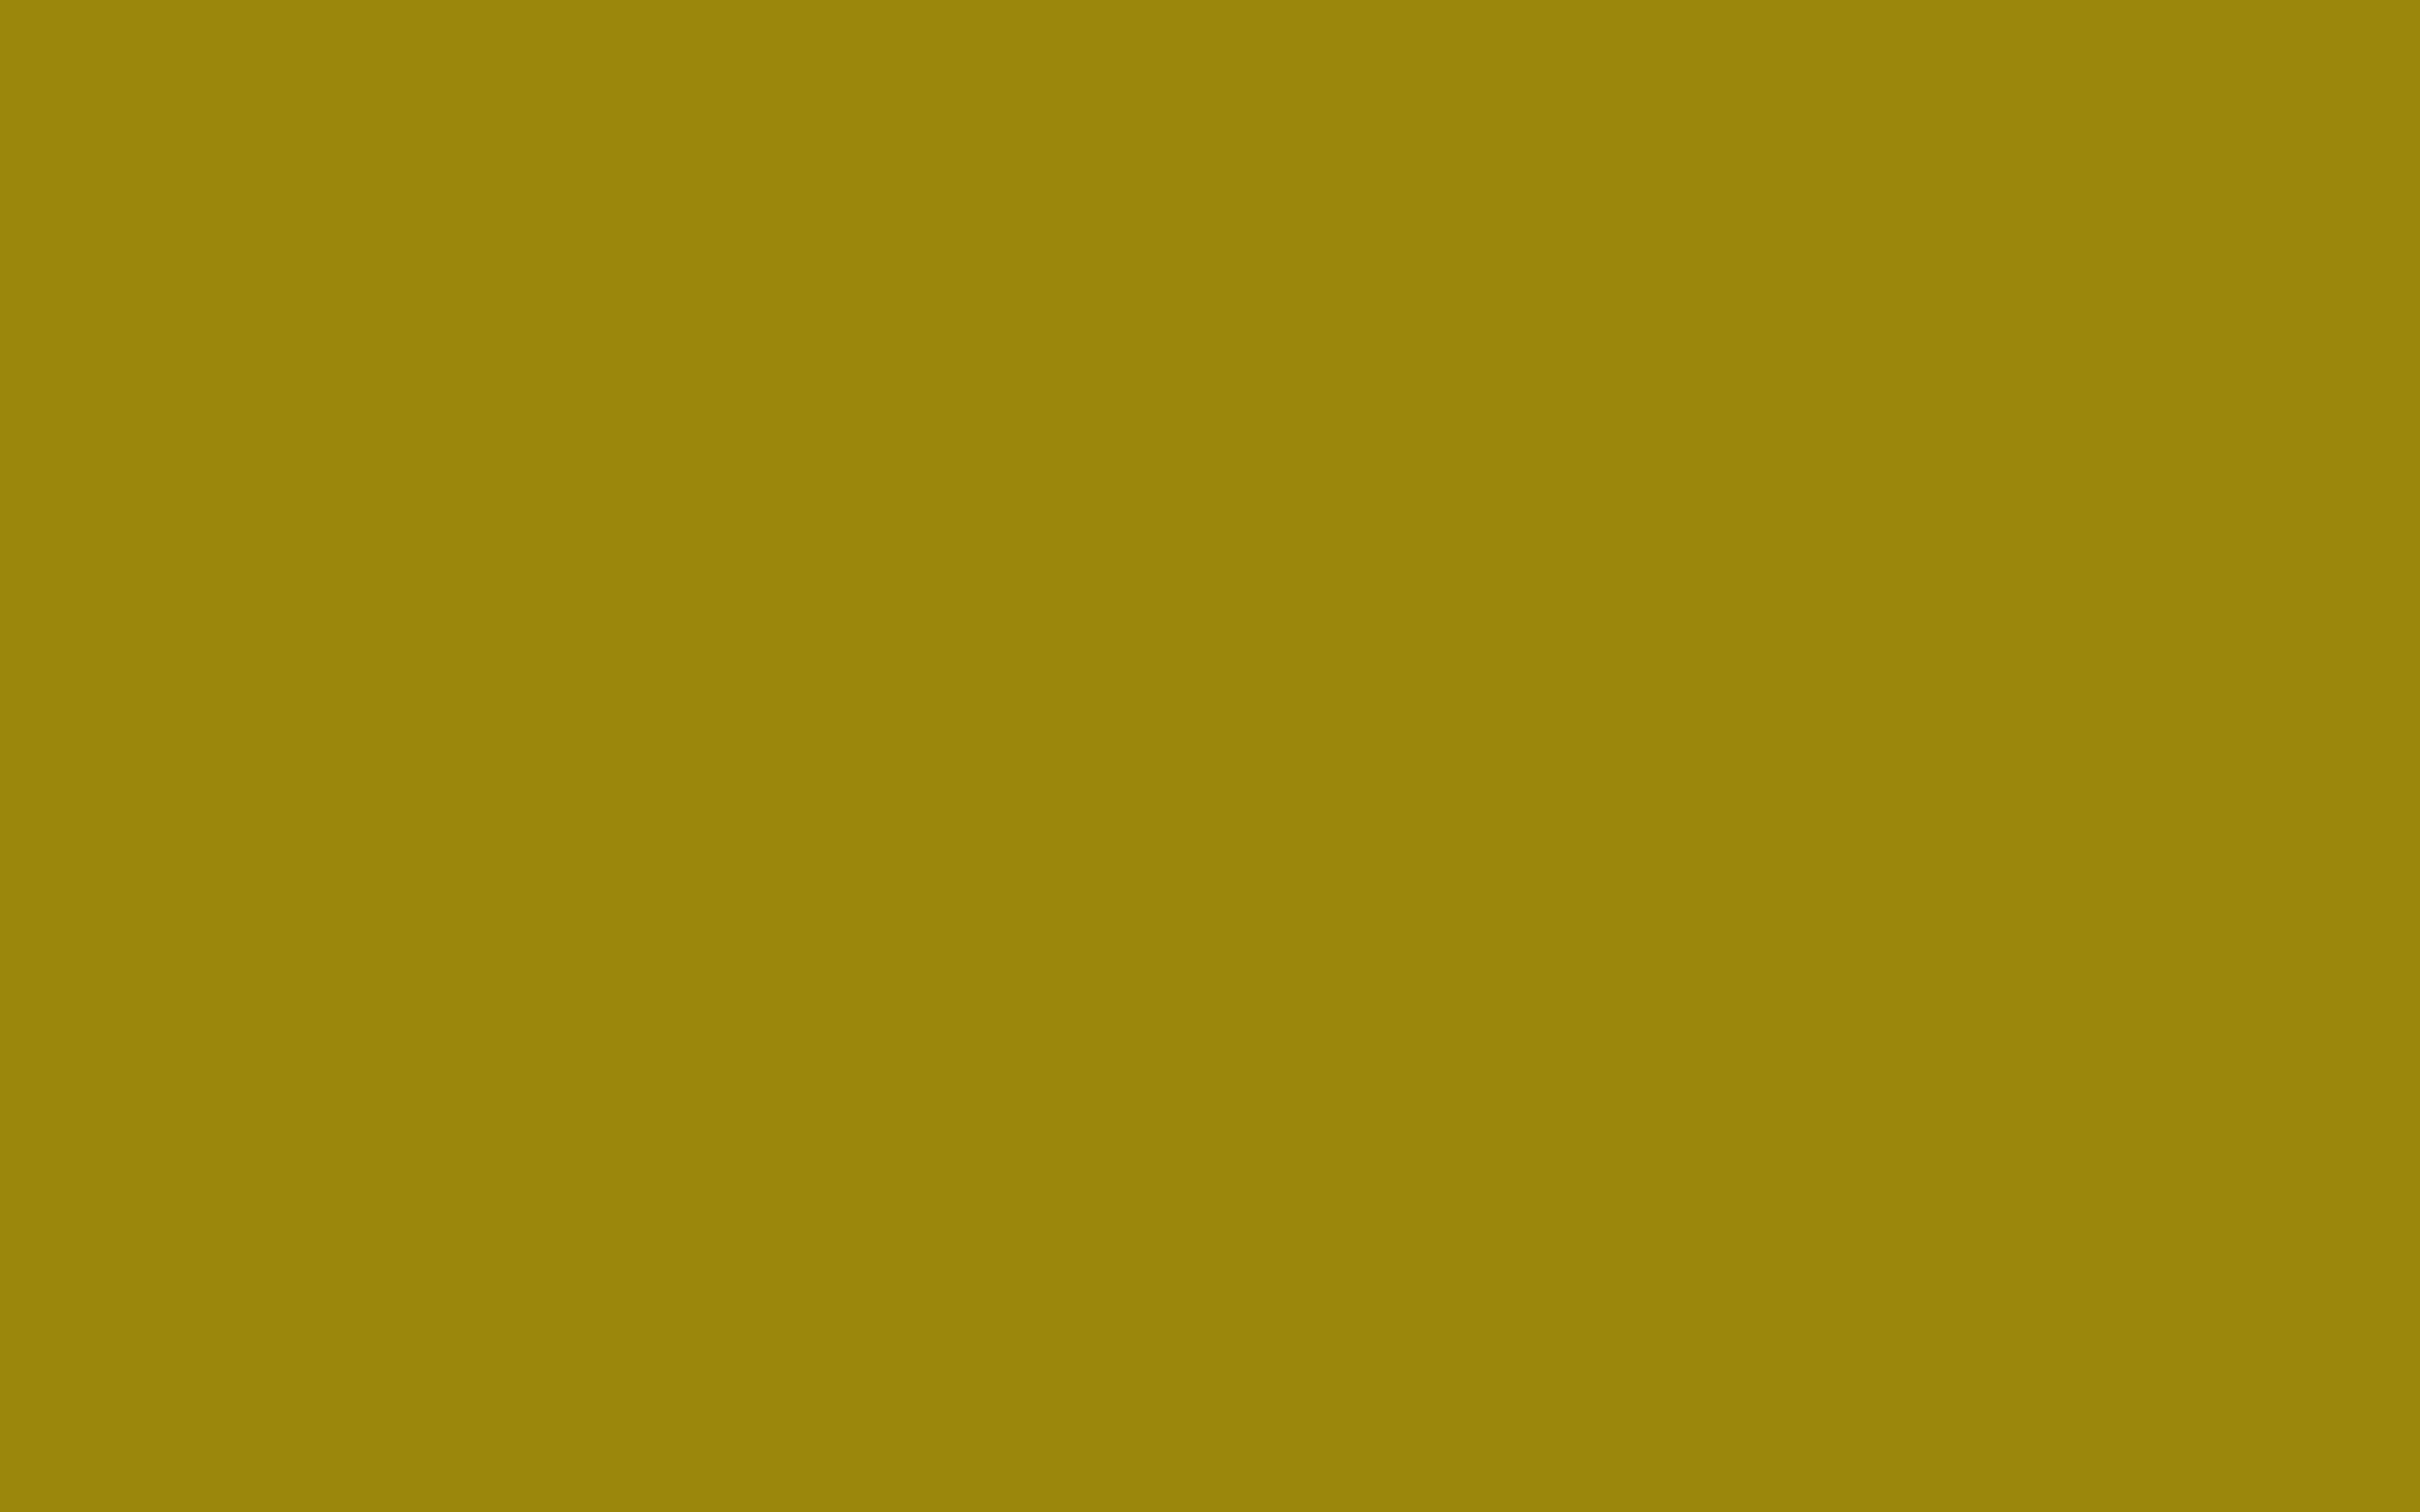 2880x1800 Dark Yellow Solid Color Background